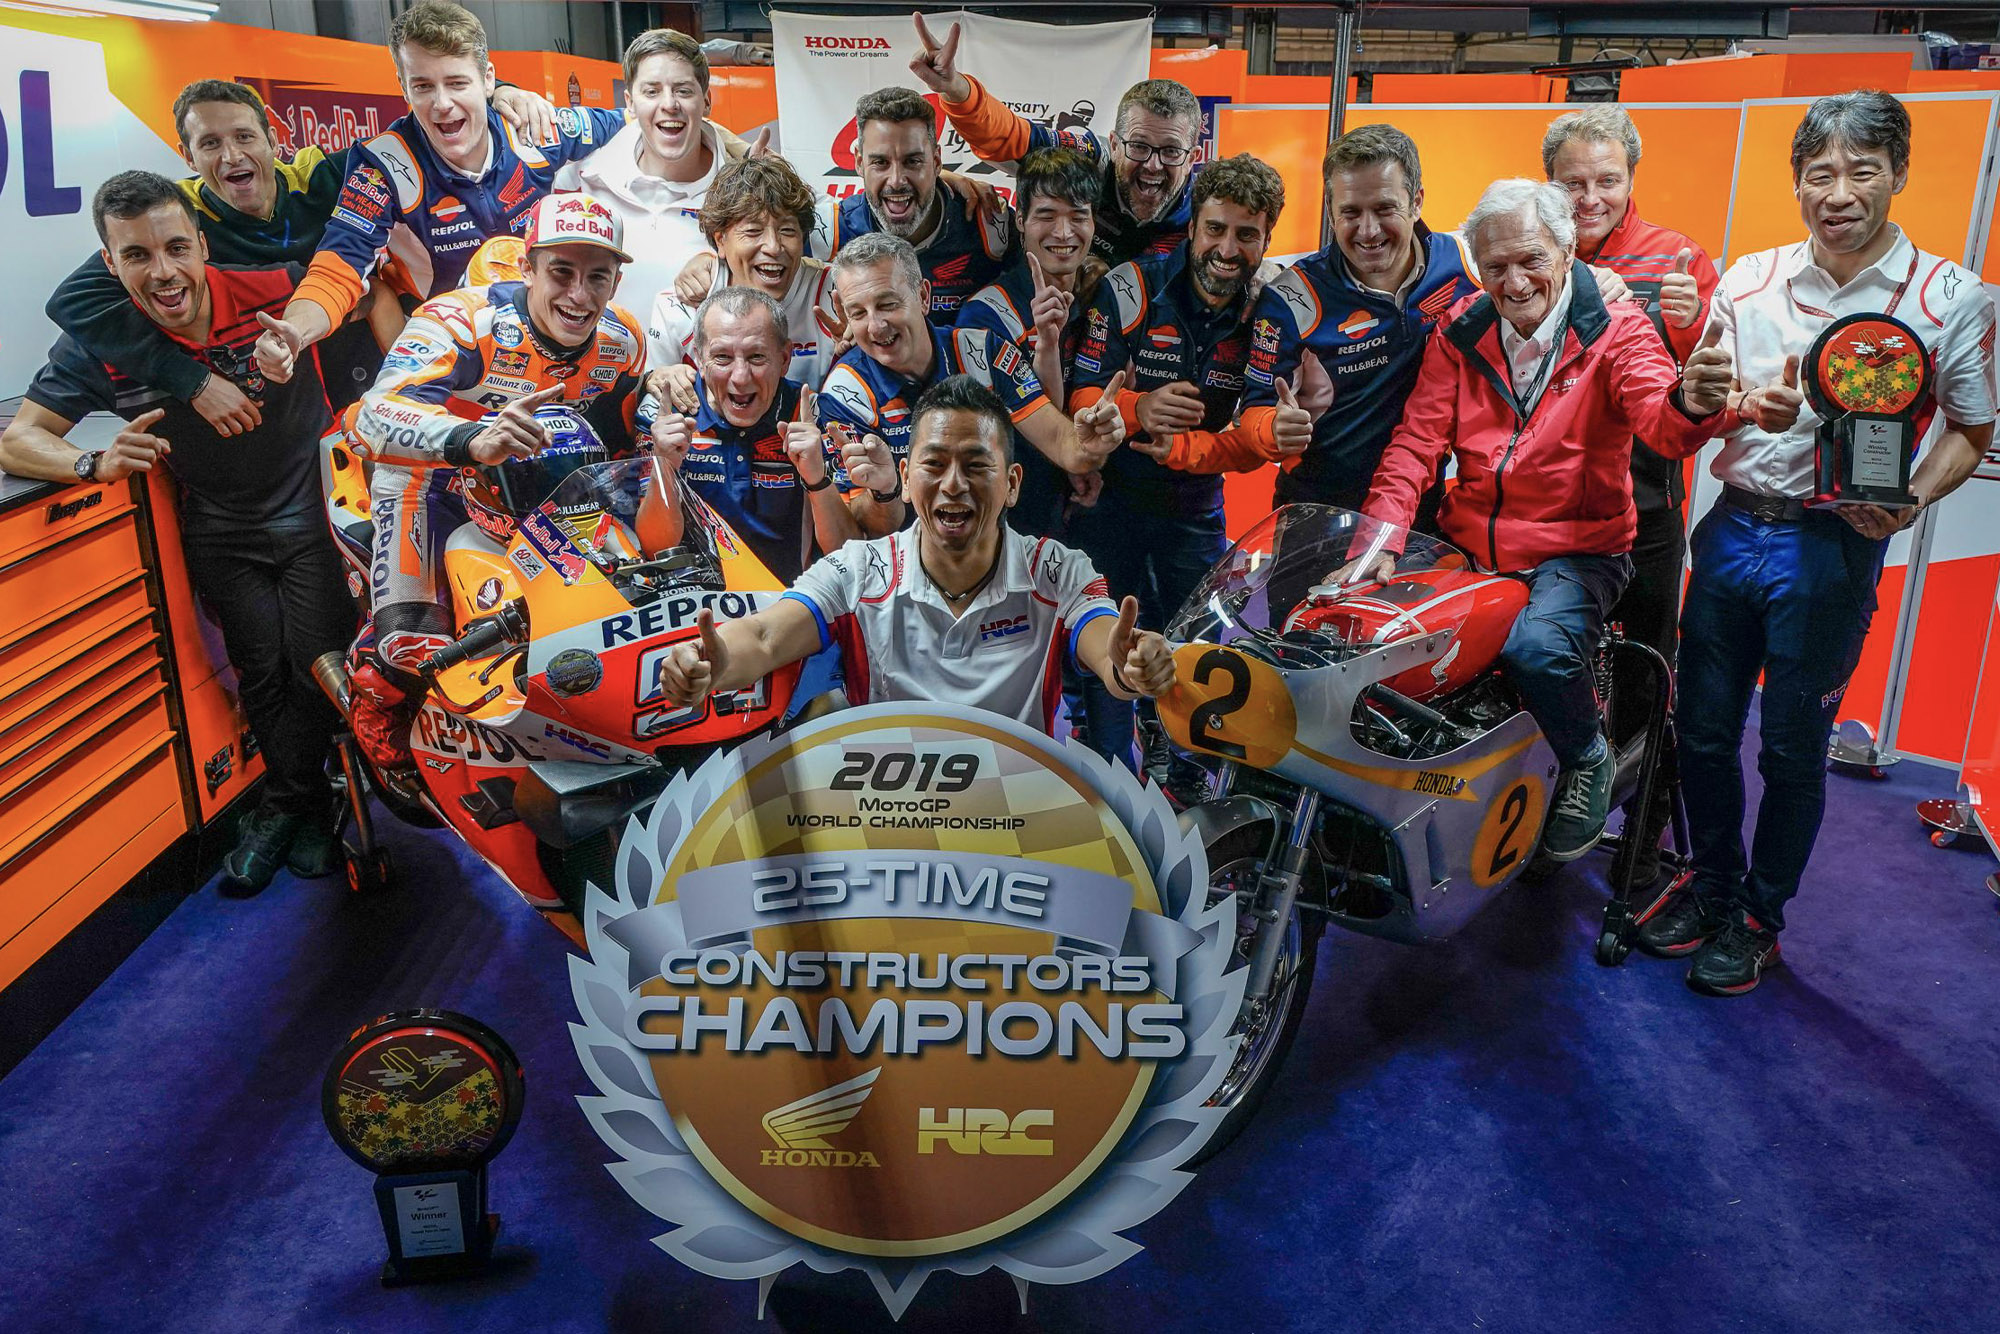 Marc Márquez celebrates Honda's latest MotoGP title win at Motegi 2019